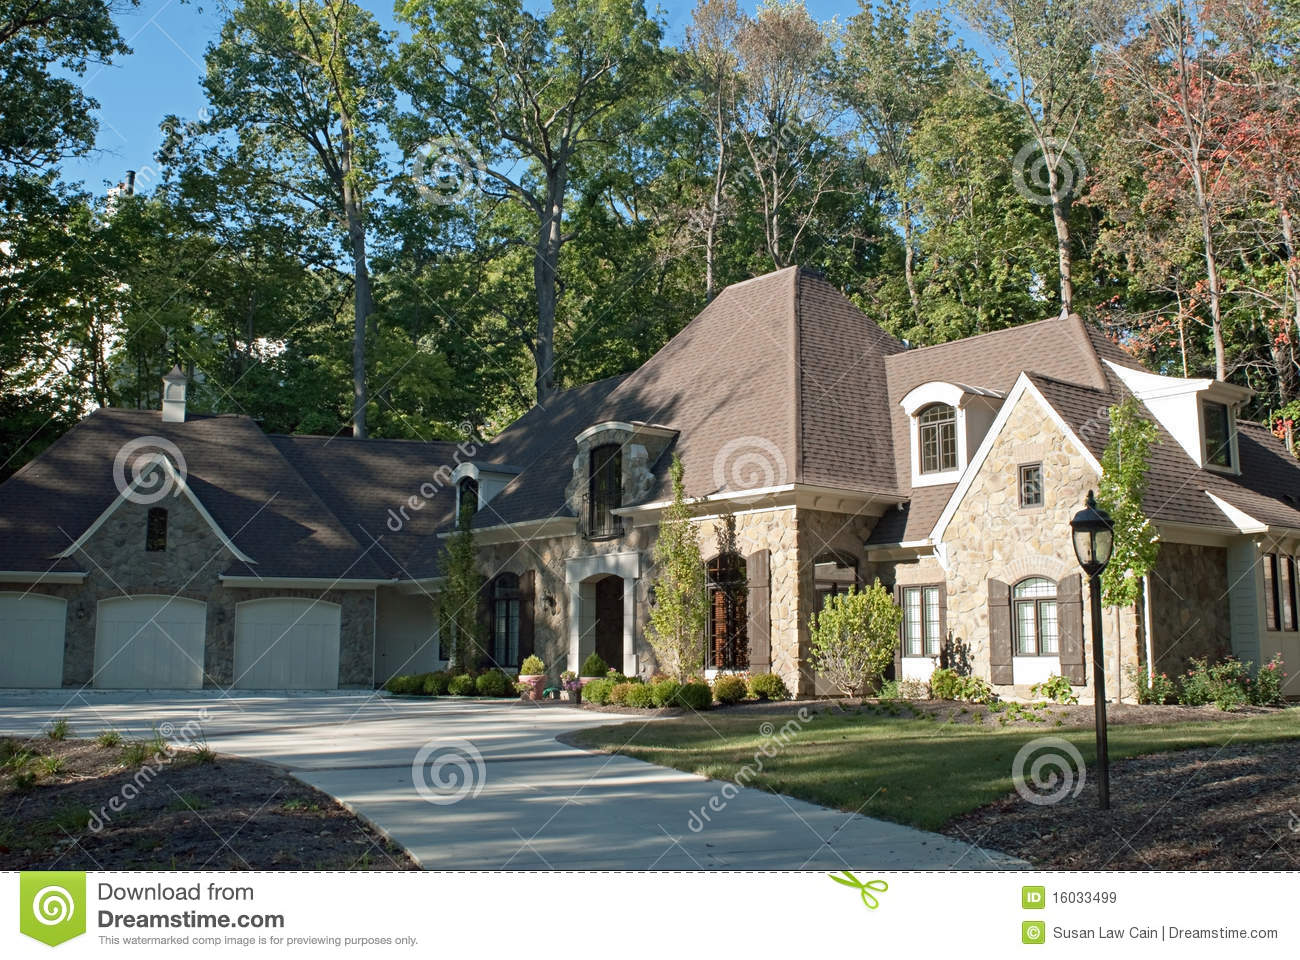 Exclusive House In Woods